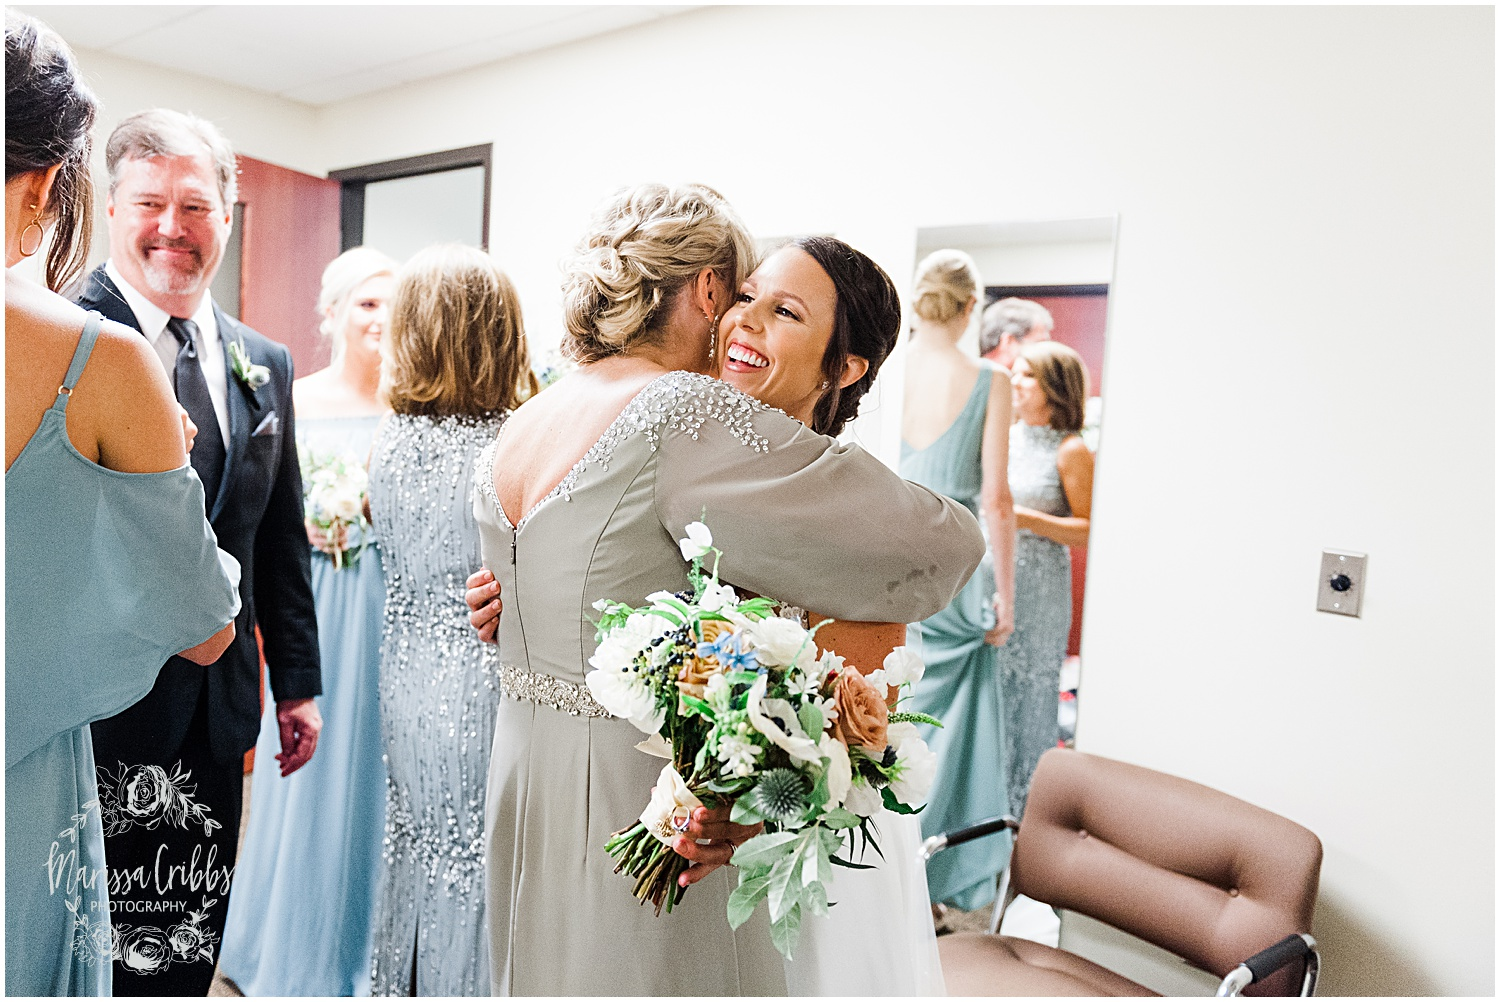 KELLY & MITCH MARRIED BLOG | MARISSA CRIBBS PHOTOGRAPHY | THE EVERLY EVENT SPACE_8848.jpg